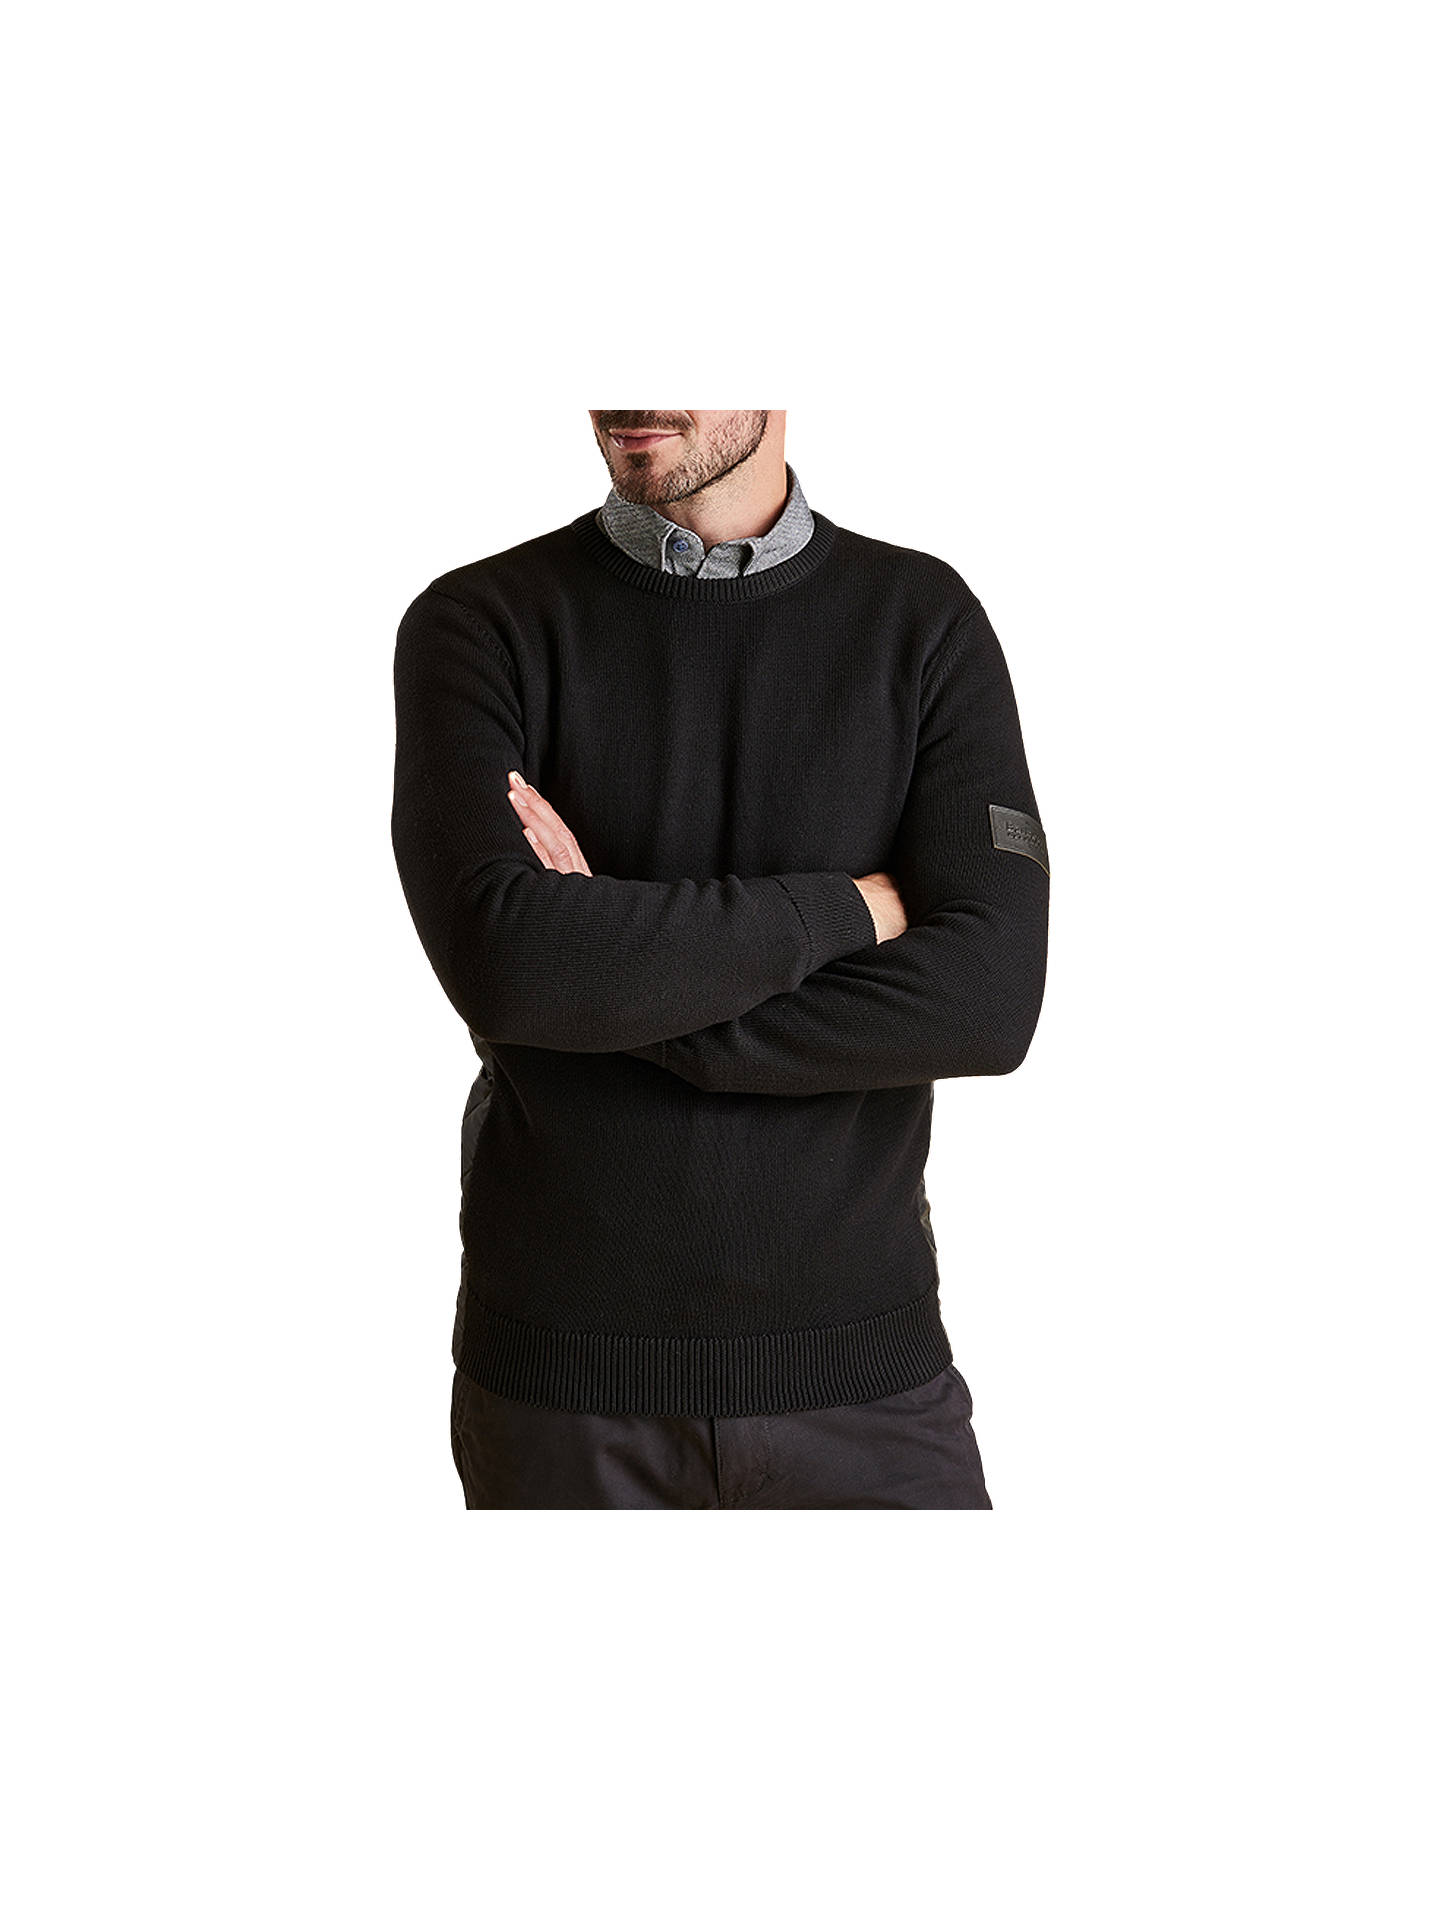 BuyBarbour Land Rover Defender Qulilt Panel Jumper, Black, XL Online at johnlewis.com